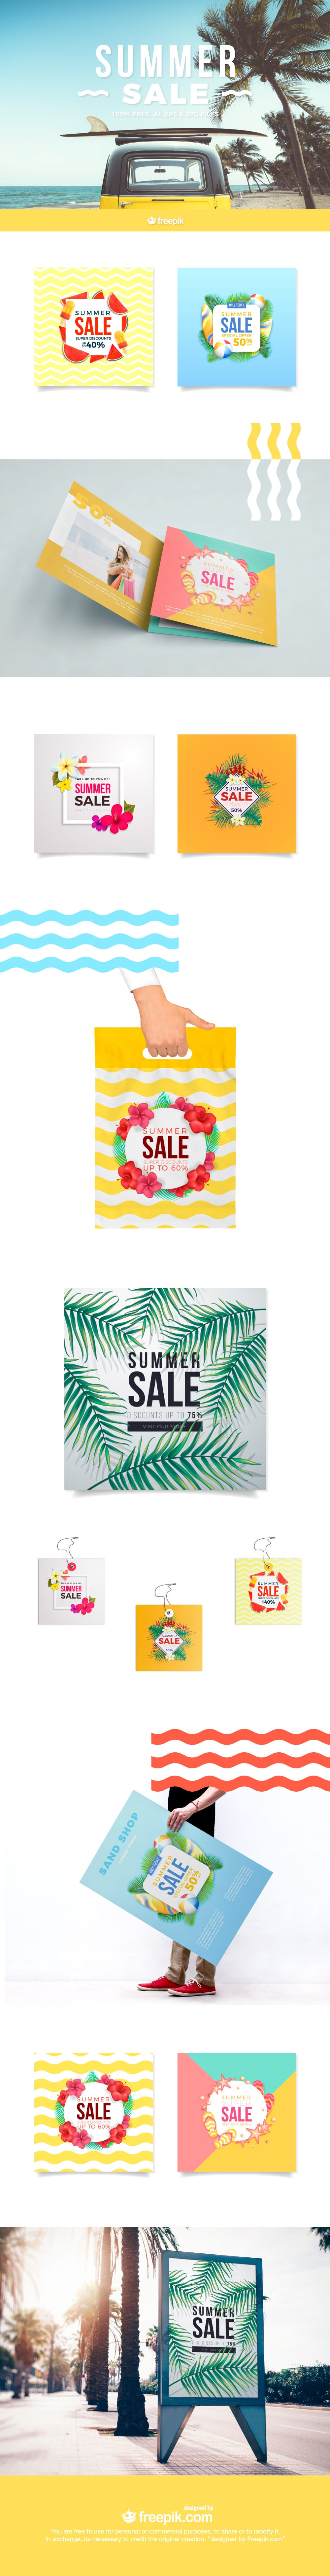 summer sale graphics